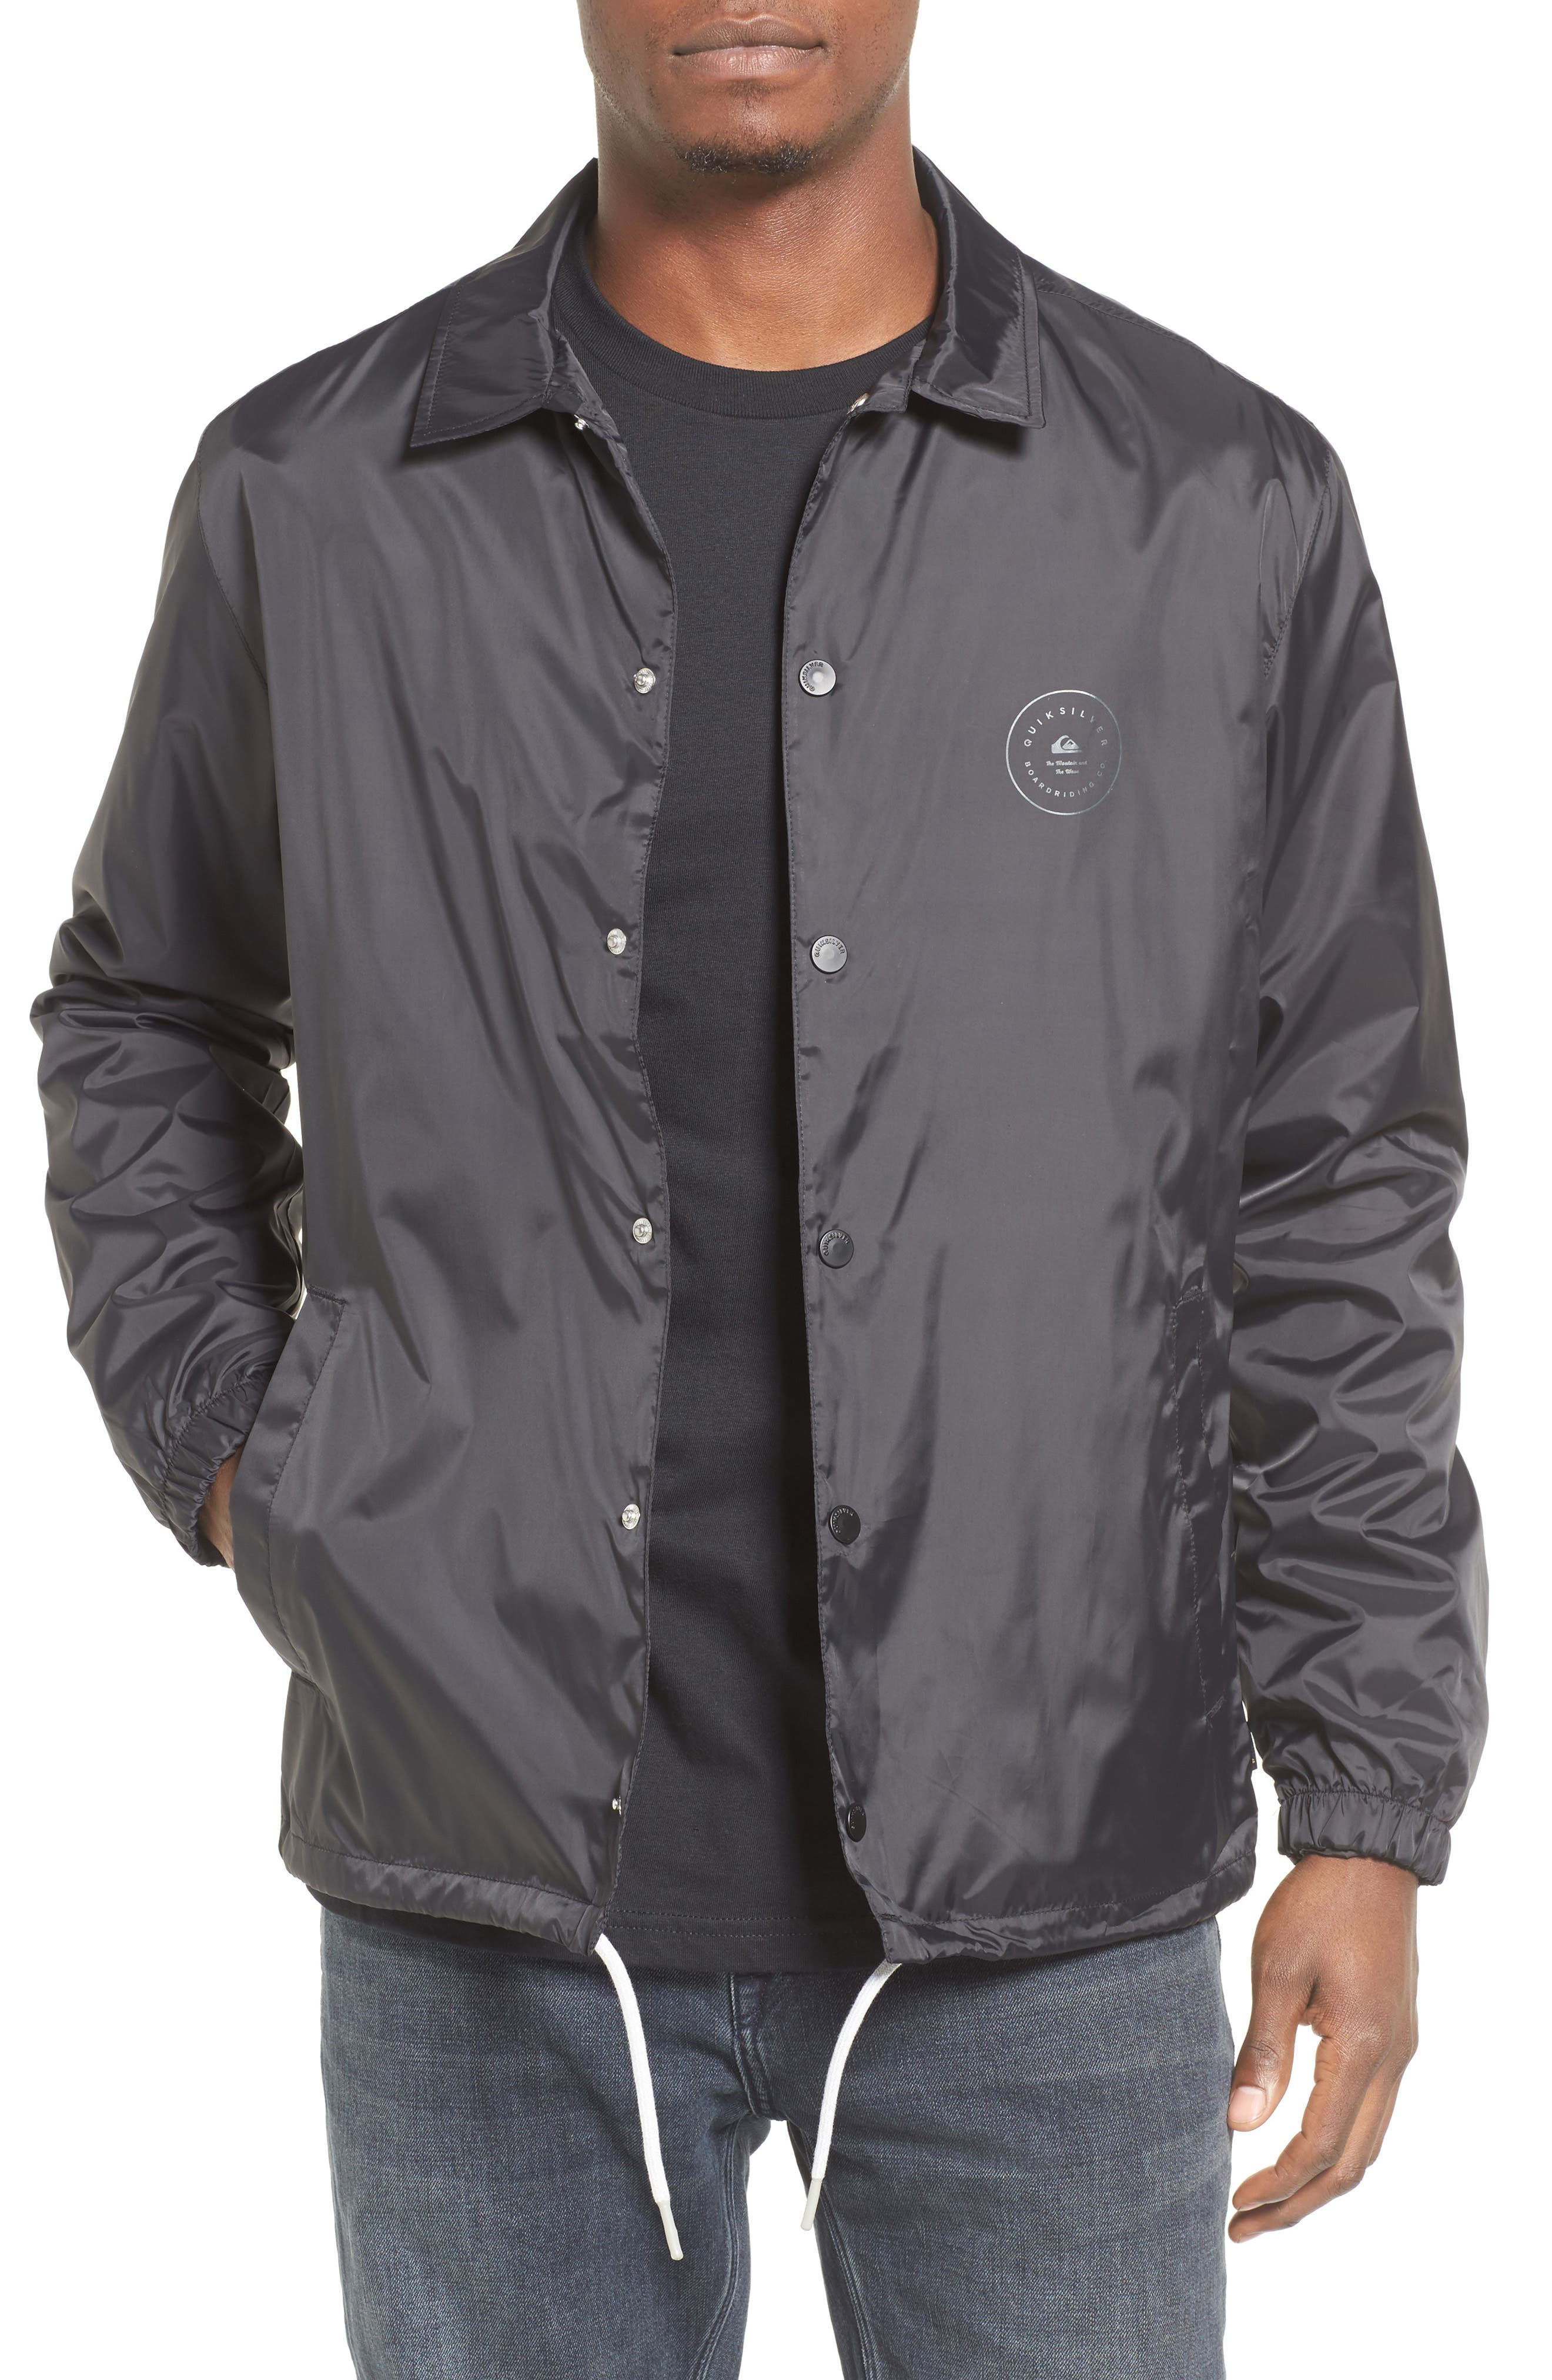 Alternate Image 1 Selected - Quiksilver Always Surfing Coach's Jacket